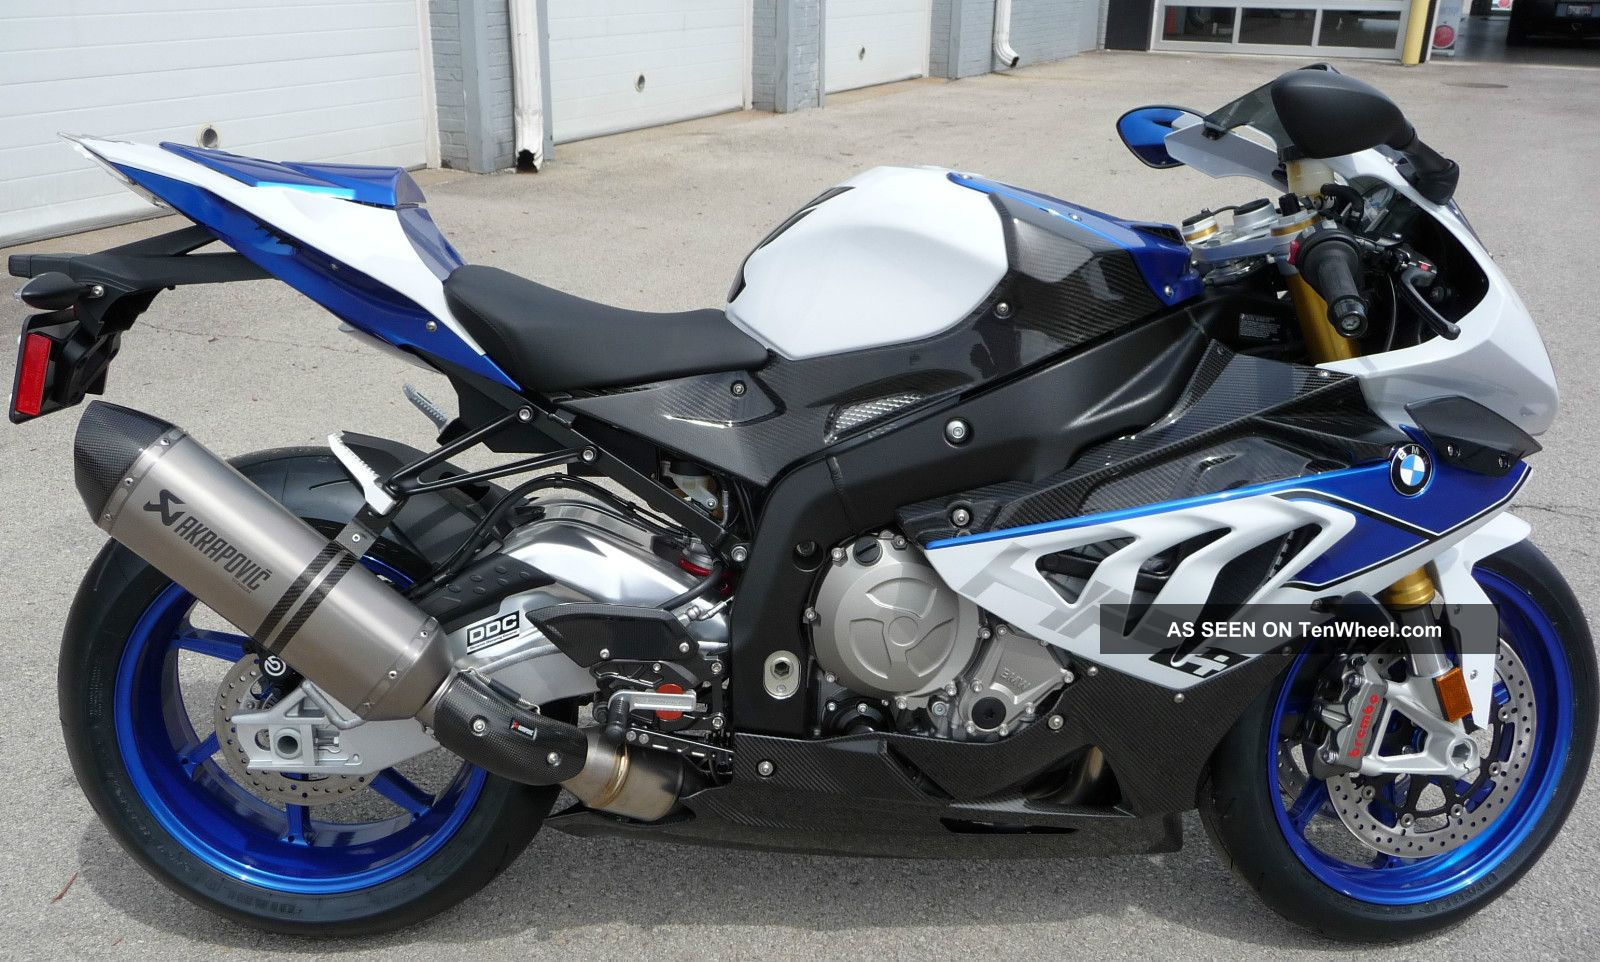 Bmw Hp4 Competition Model Motorcycle 2013 (s1000rr Bike Superbike German) Other photo